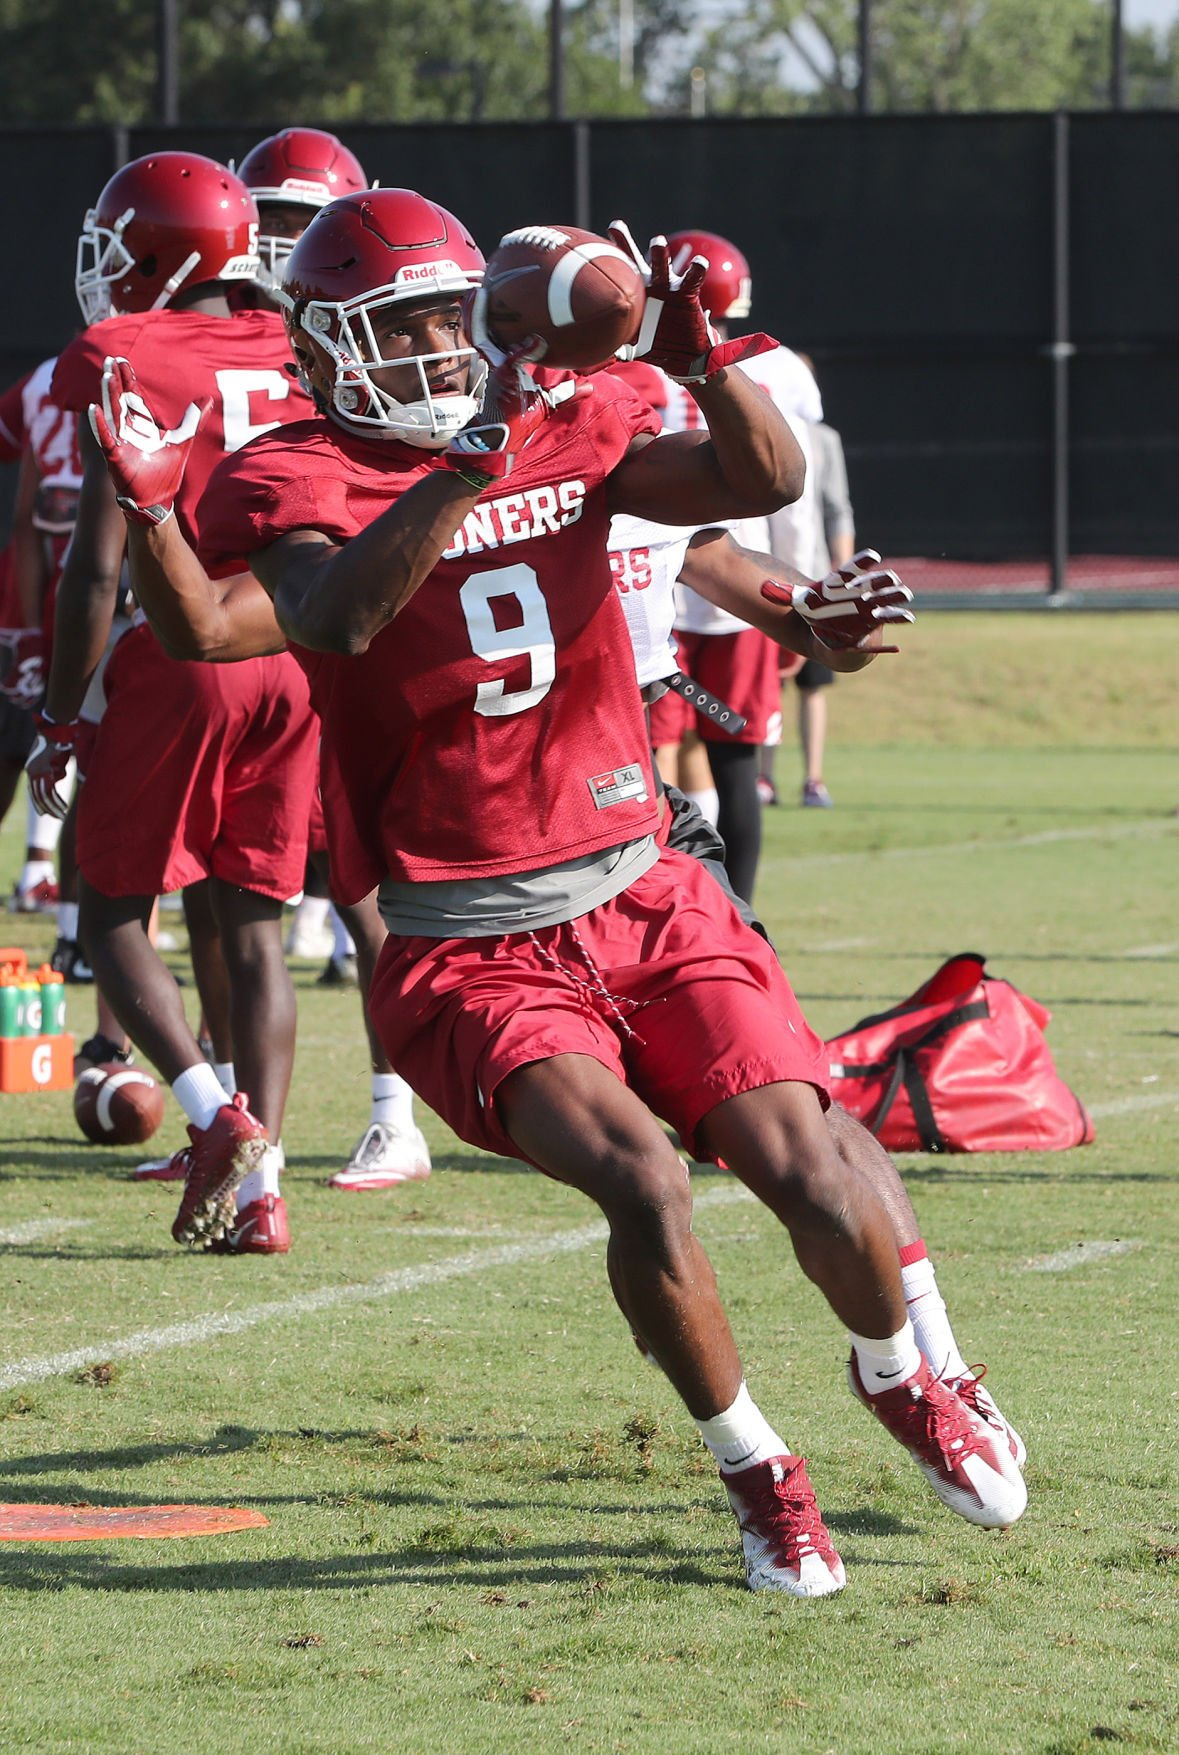 OU football: Complete analysis of OU's depth chart reveal ...